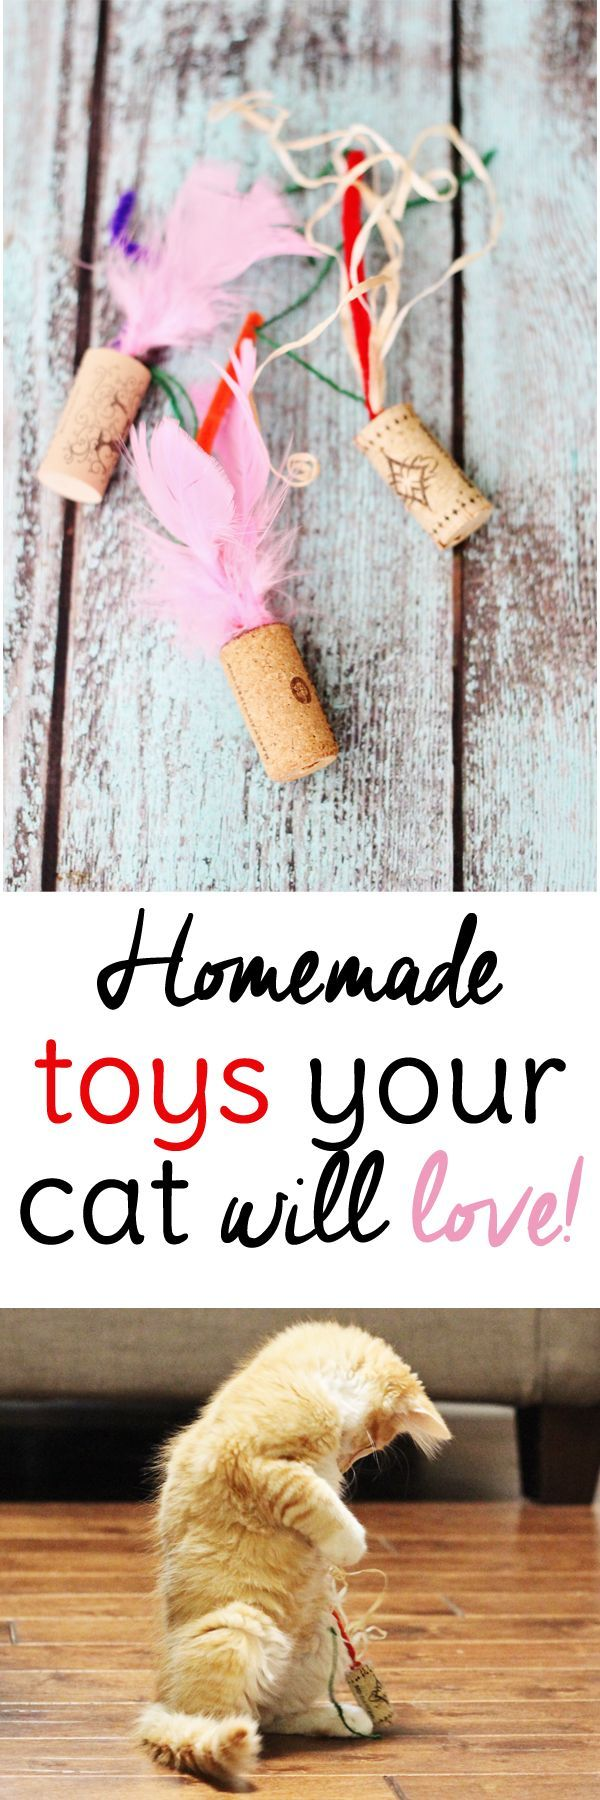 Your cat will love these easy homemade cat toys made from wine corks.  Don't have time to make toys? Come see our selection! #grandjunction #petstore